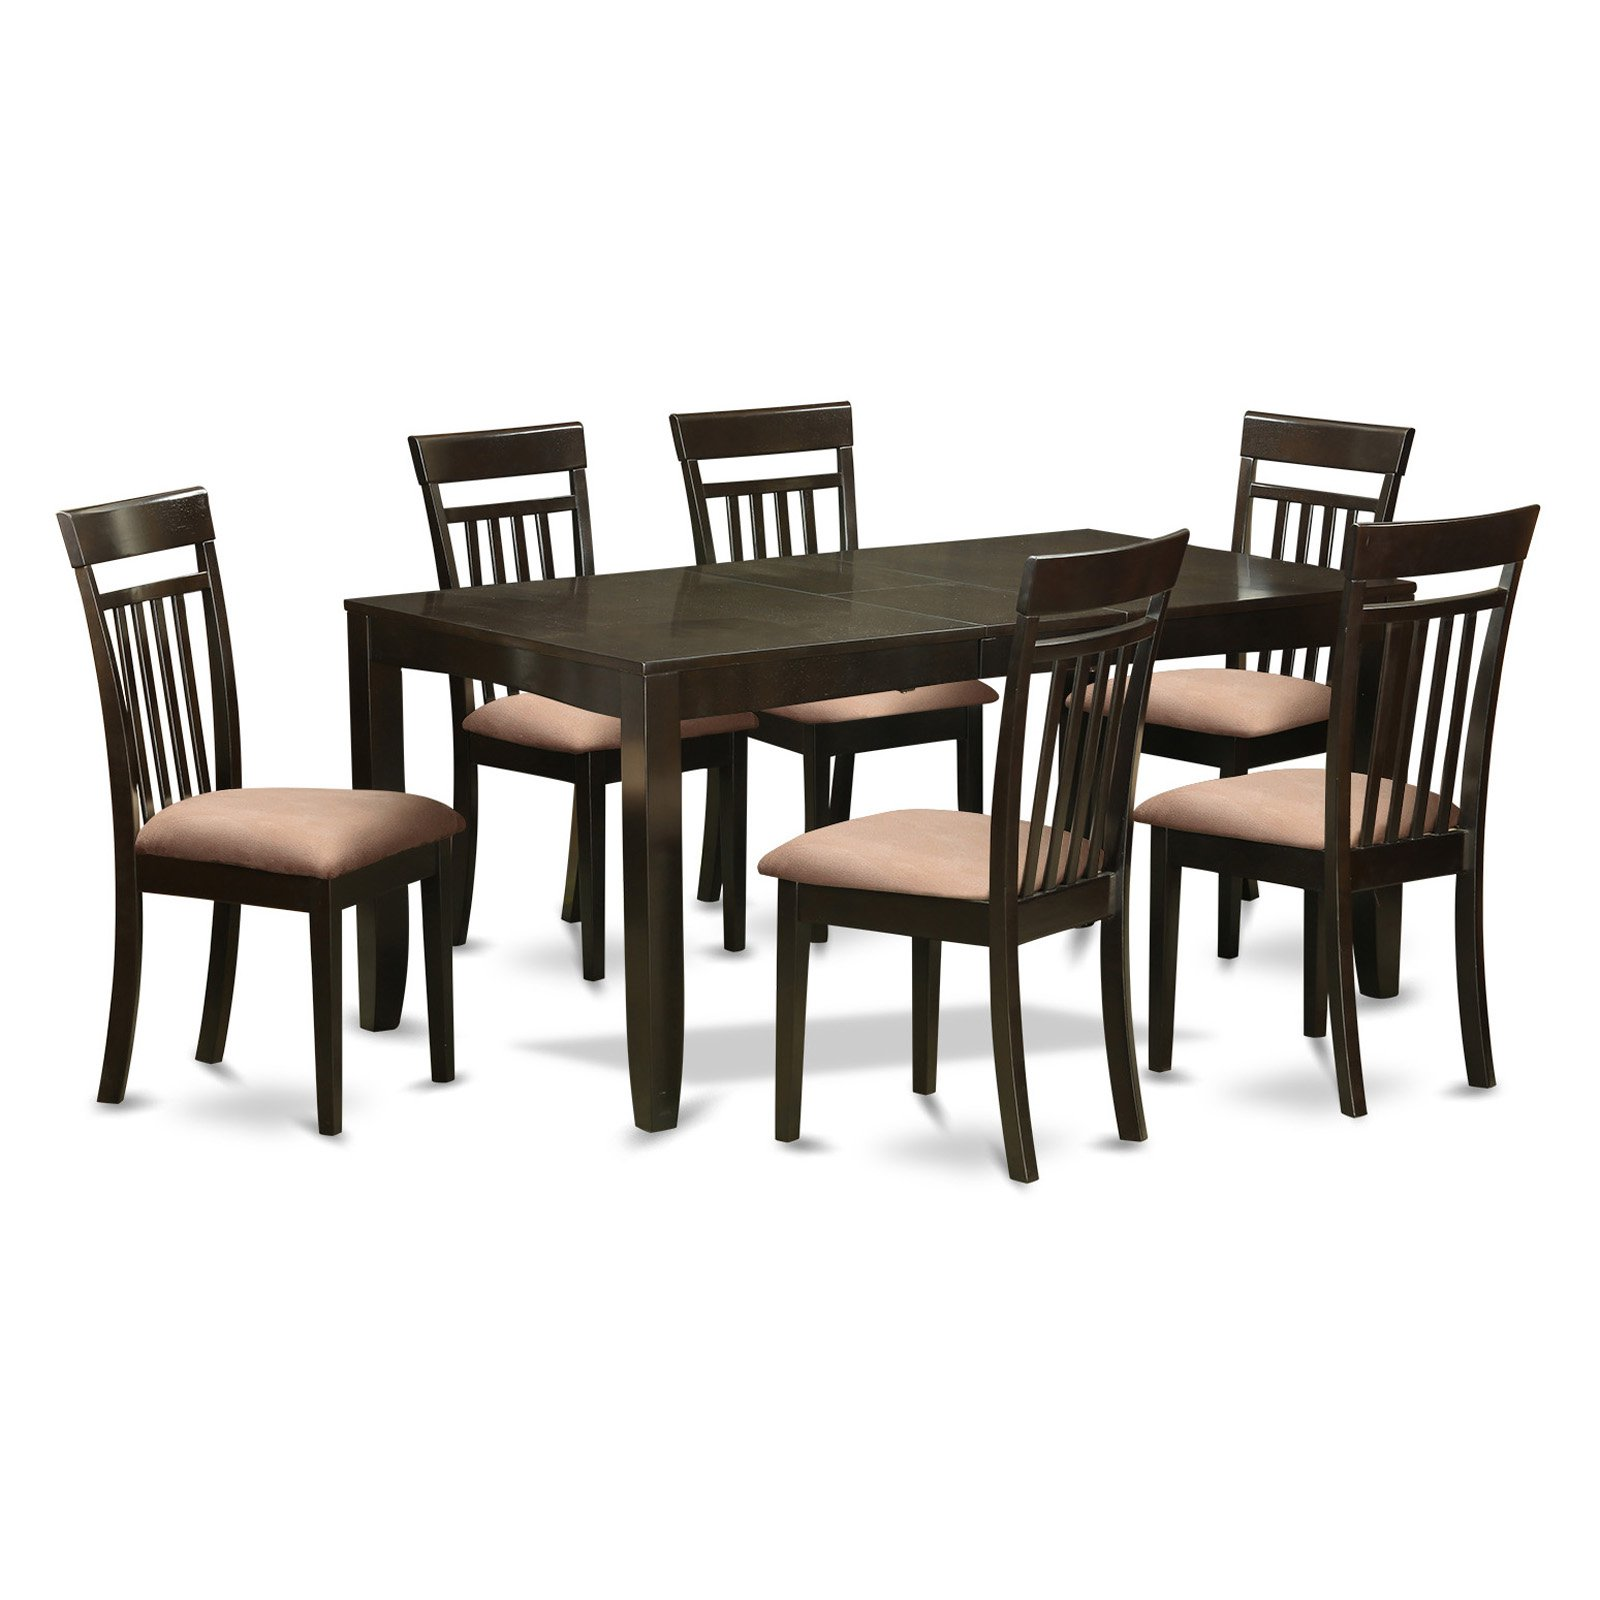 East West Furniture Lynfield 7 Piece Extension Dining Table Set with Capri Chairs